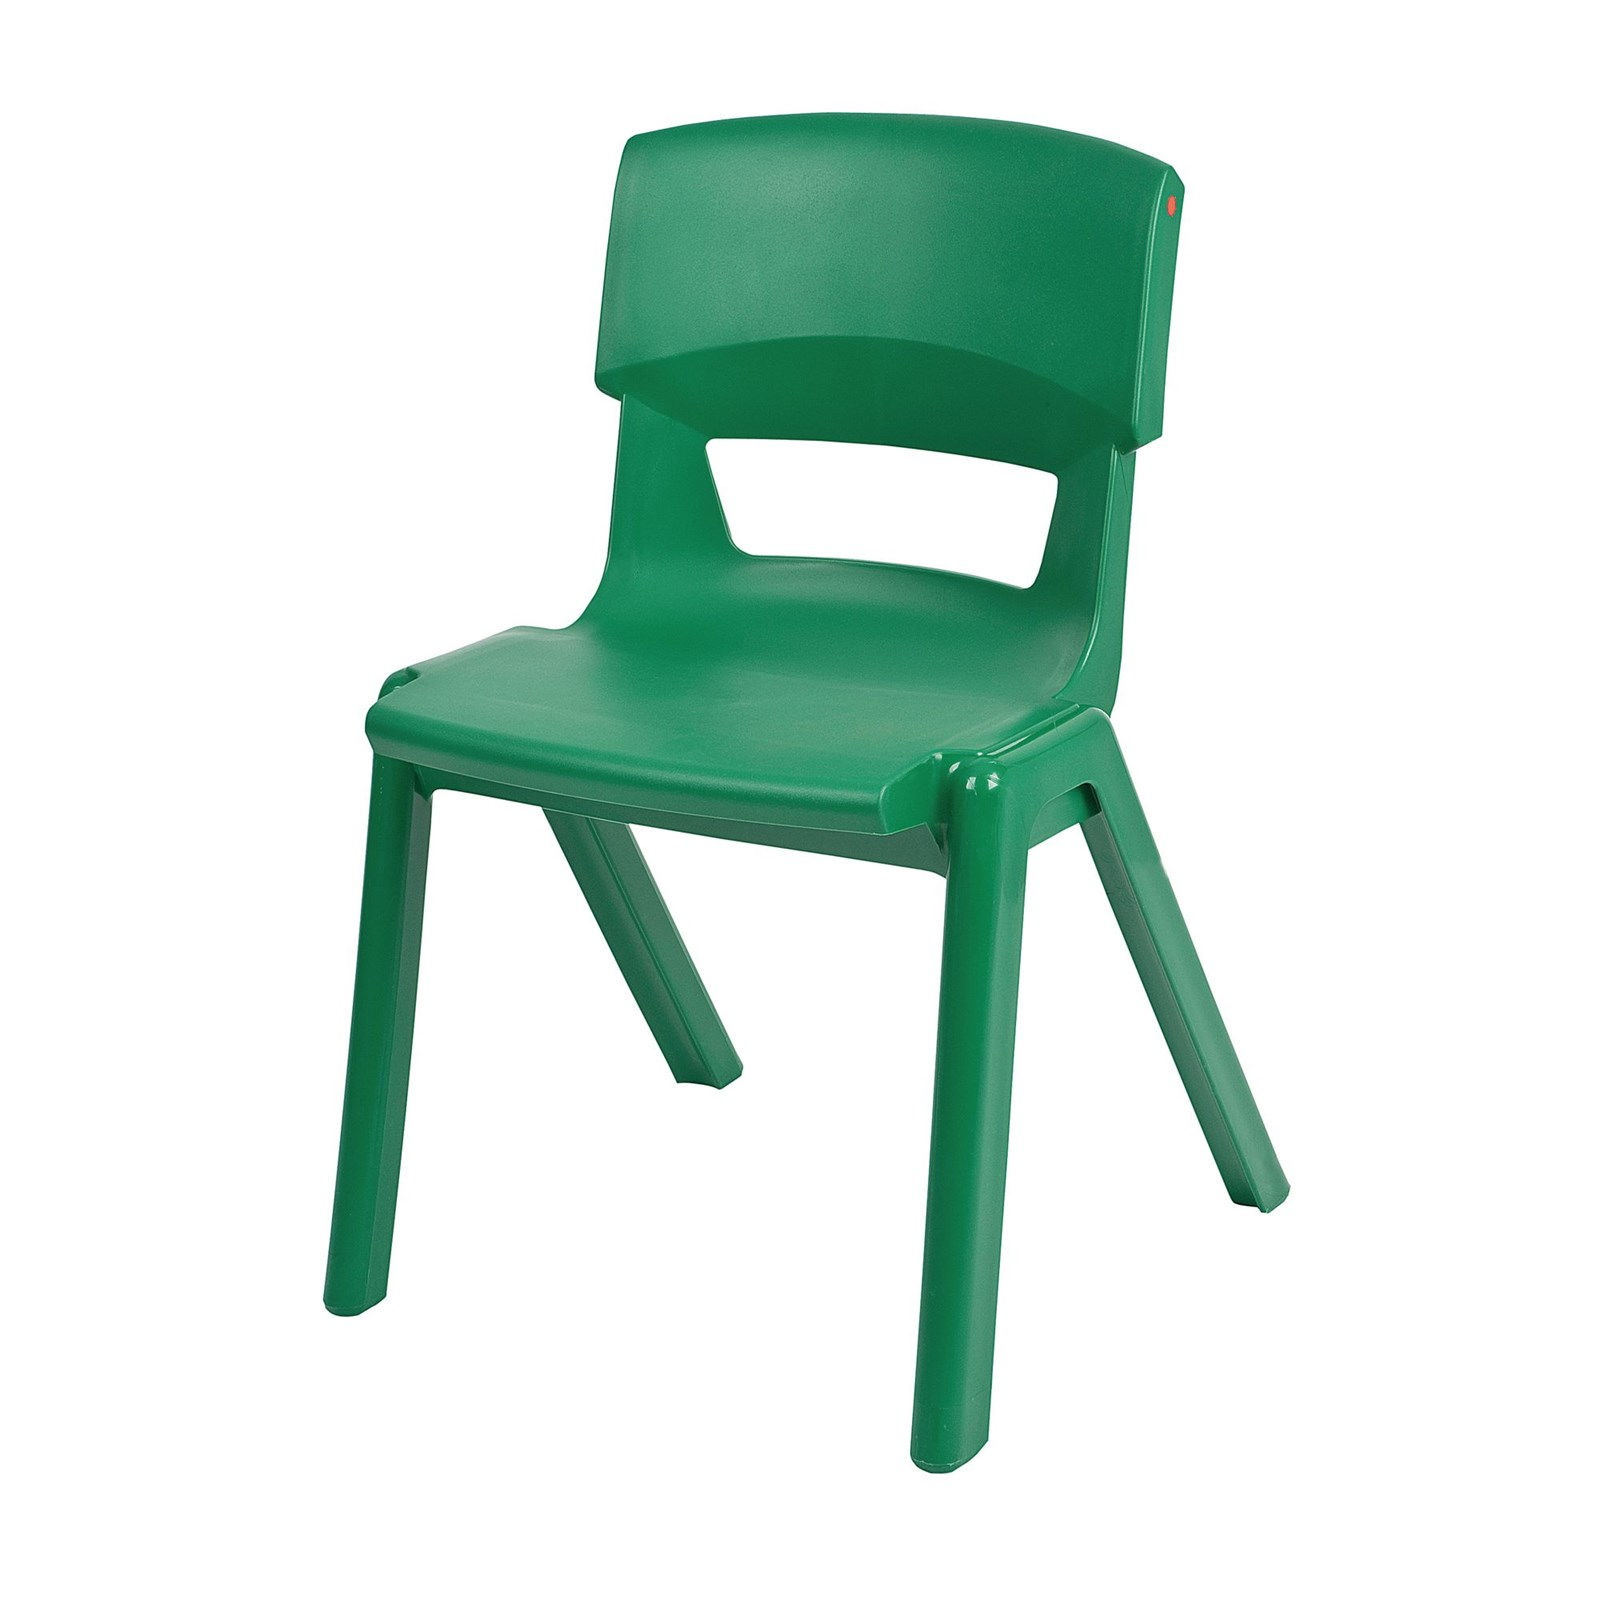 Size E - Postura Plus Chair - Seat height: 430mm - Green